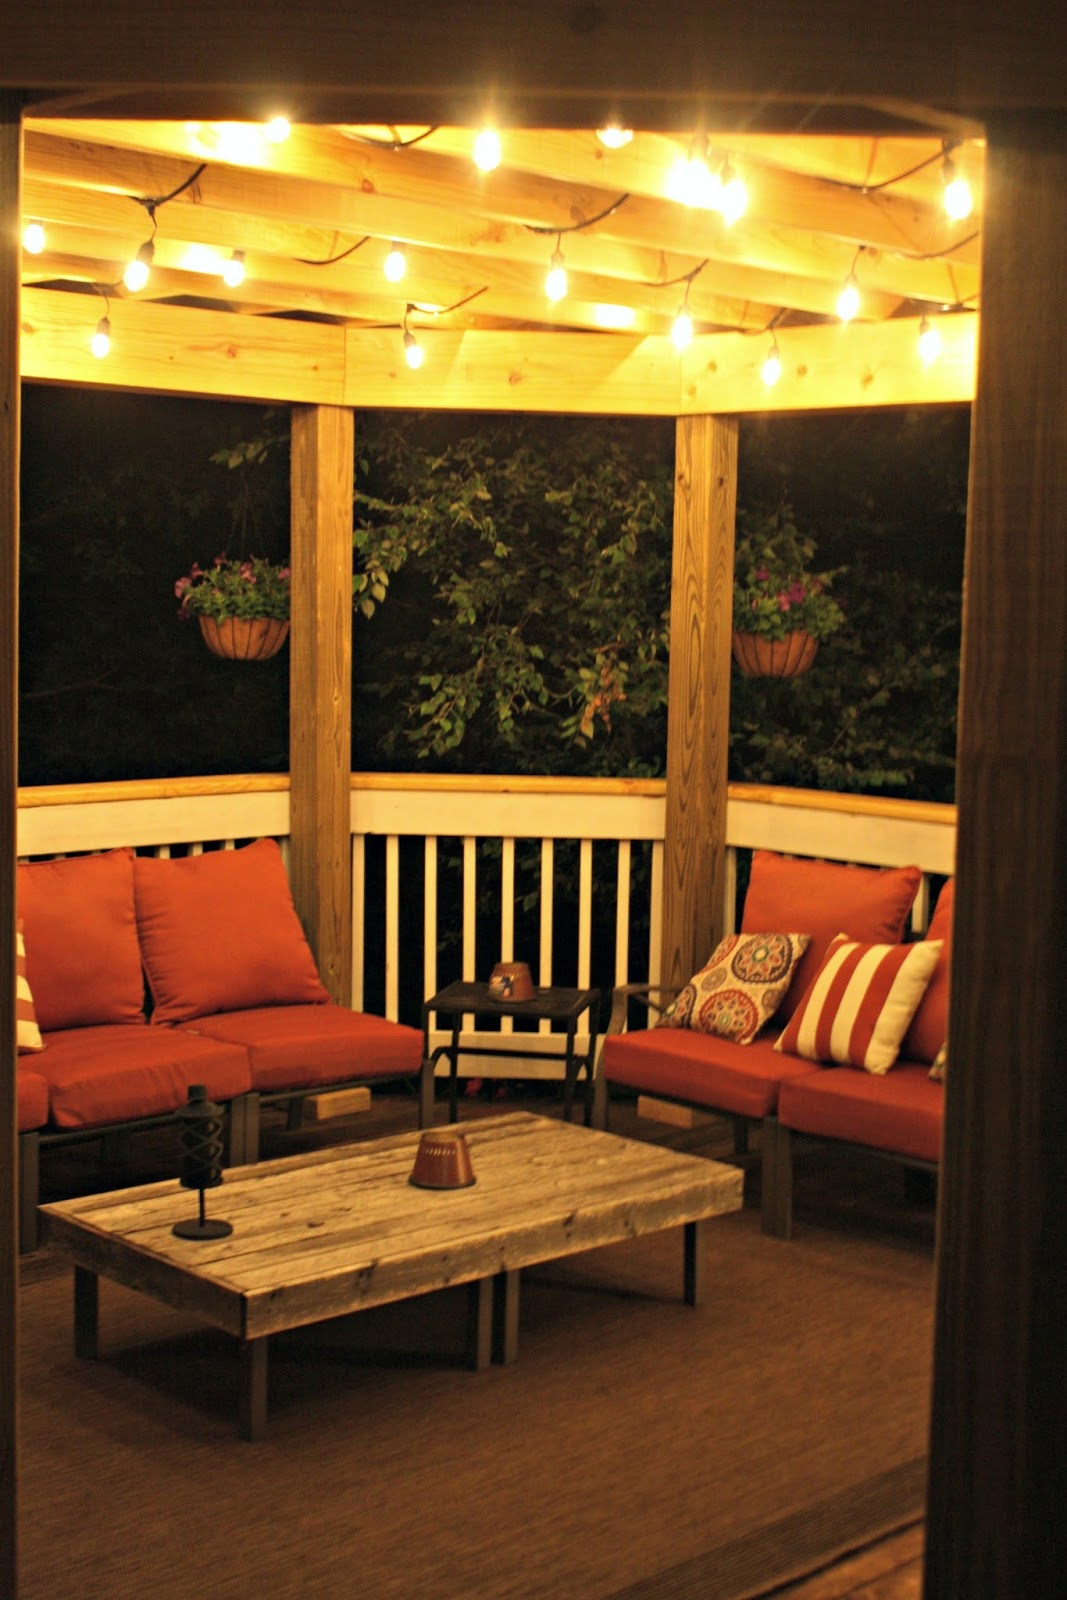 The best outdoor lights from thrifty decor chick best outdoor lights aloadofball Choice Image